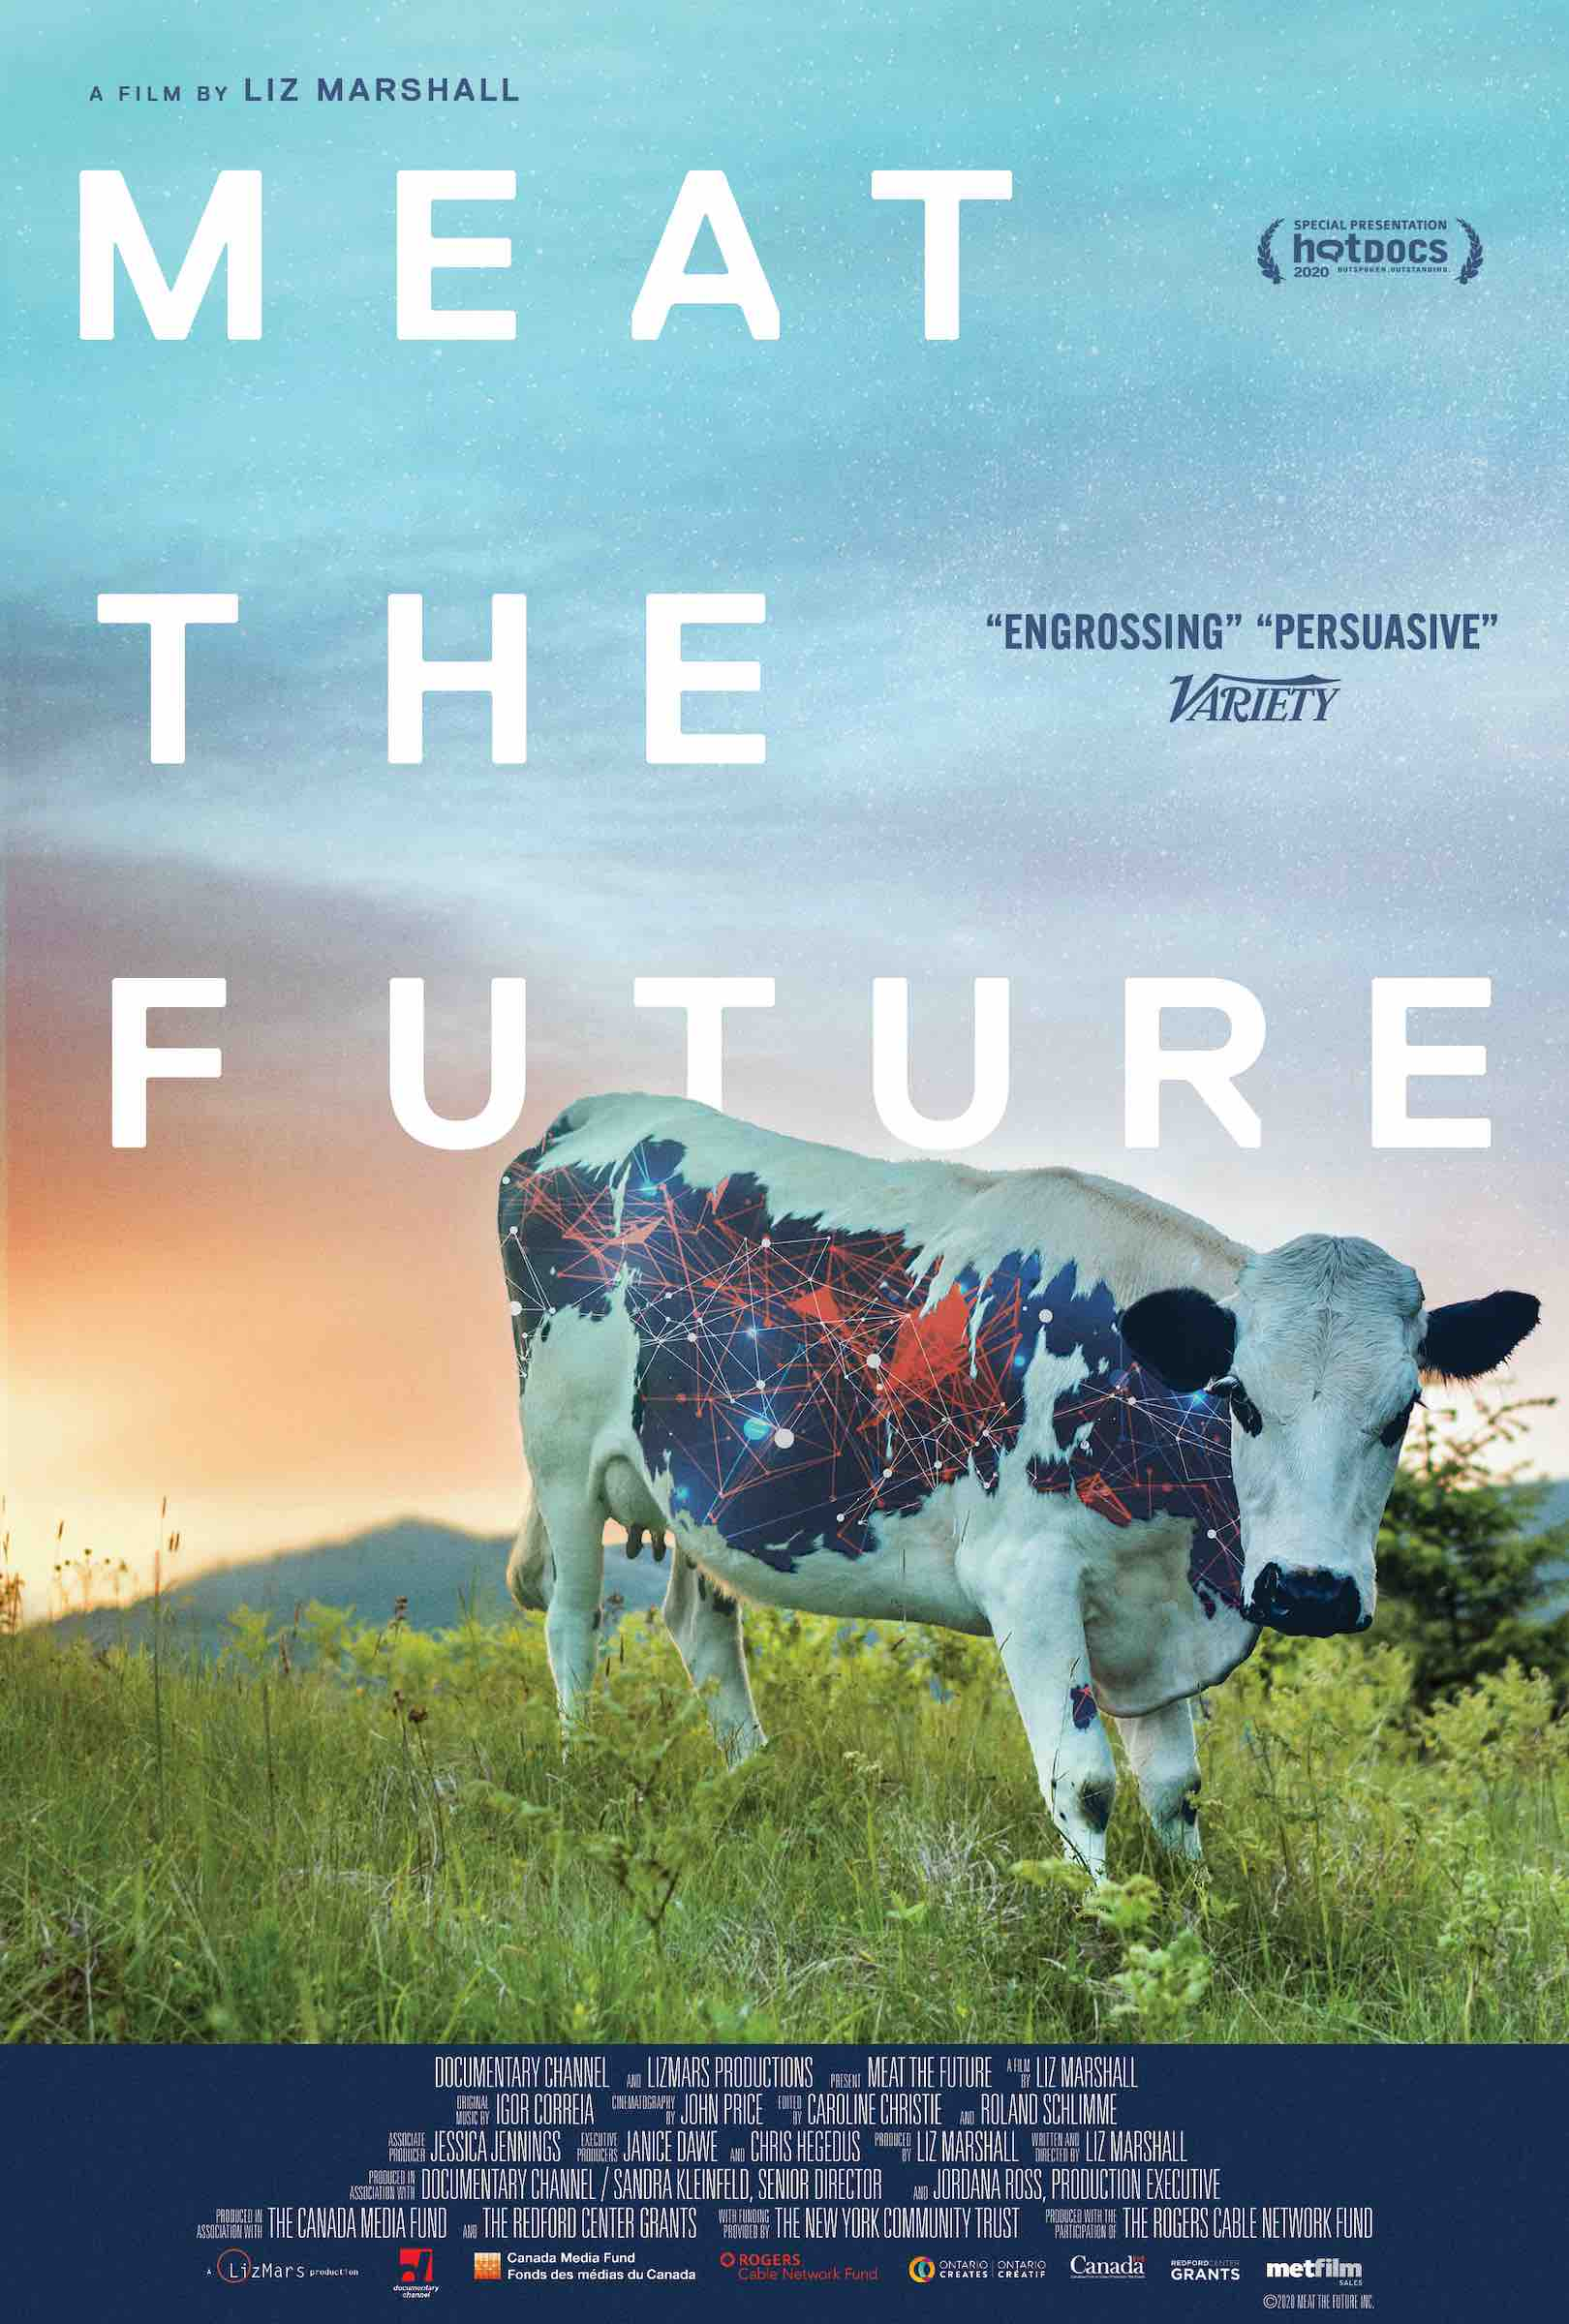 'Meat the Future' is one of many interesting documentaries coming out of the Melbourne Documentary Film Festival. Here's what we know.